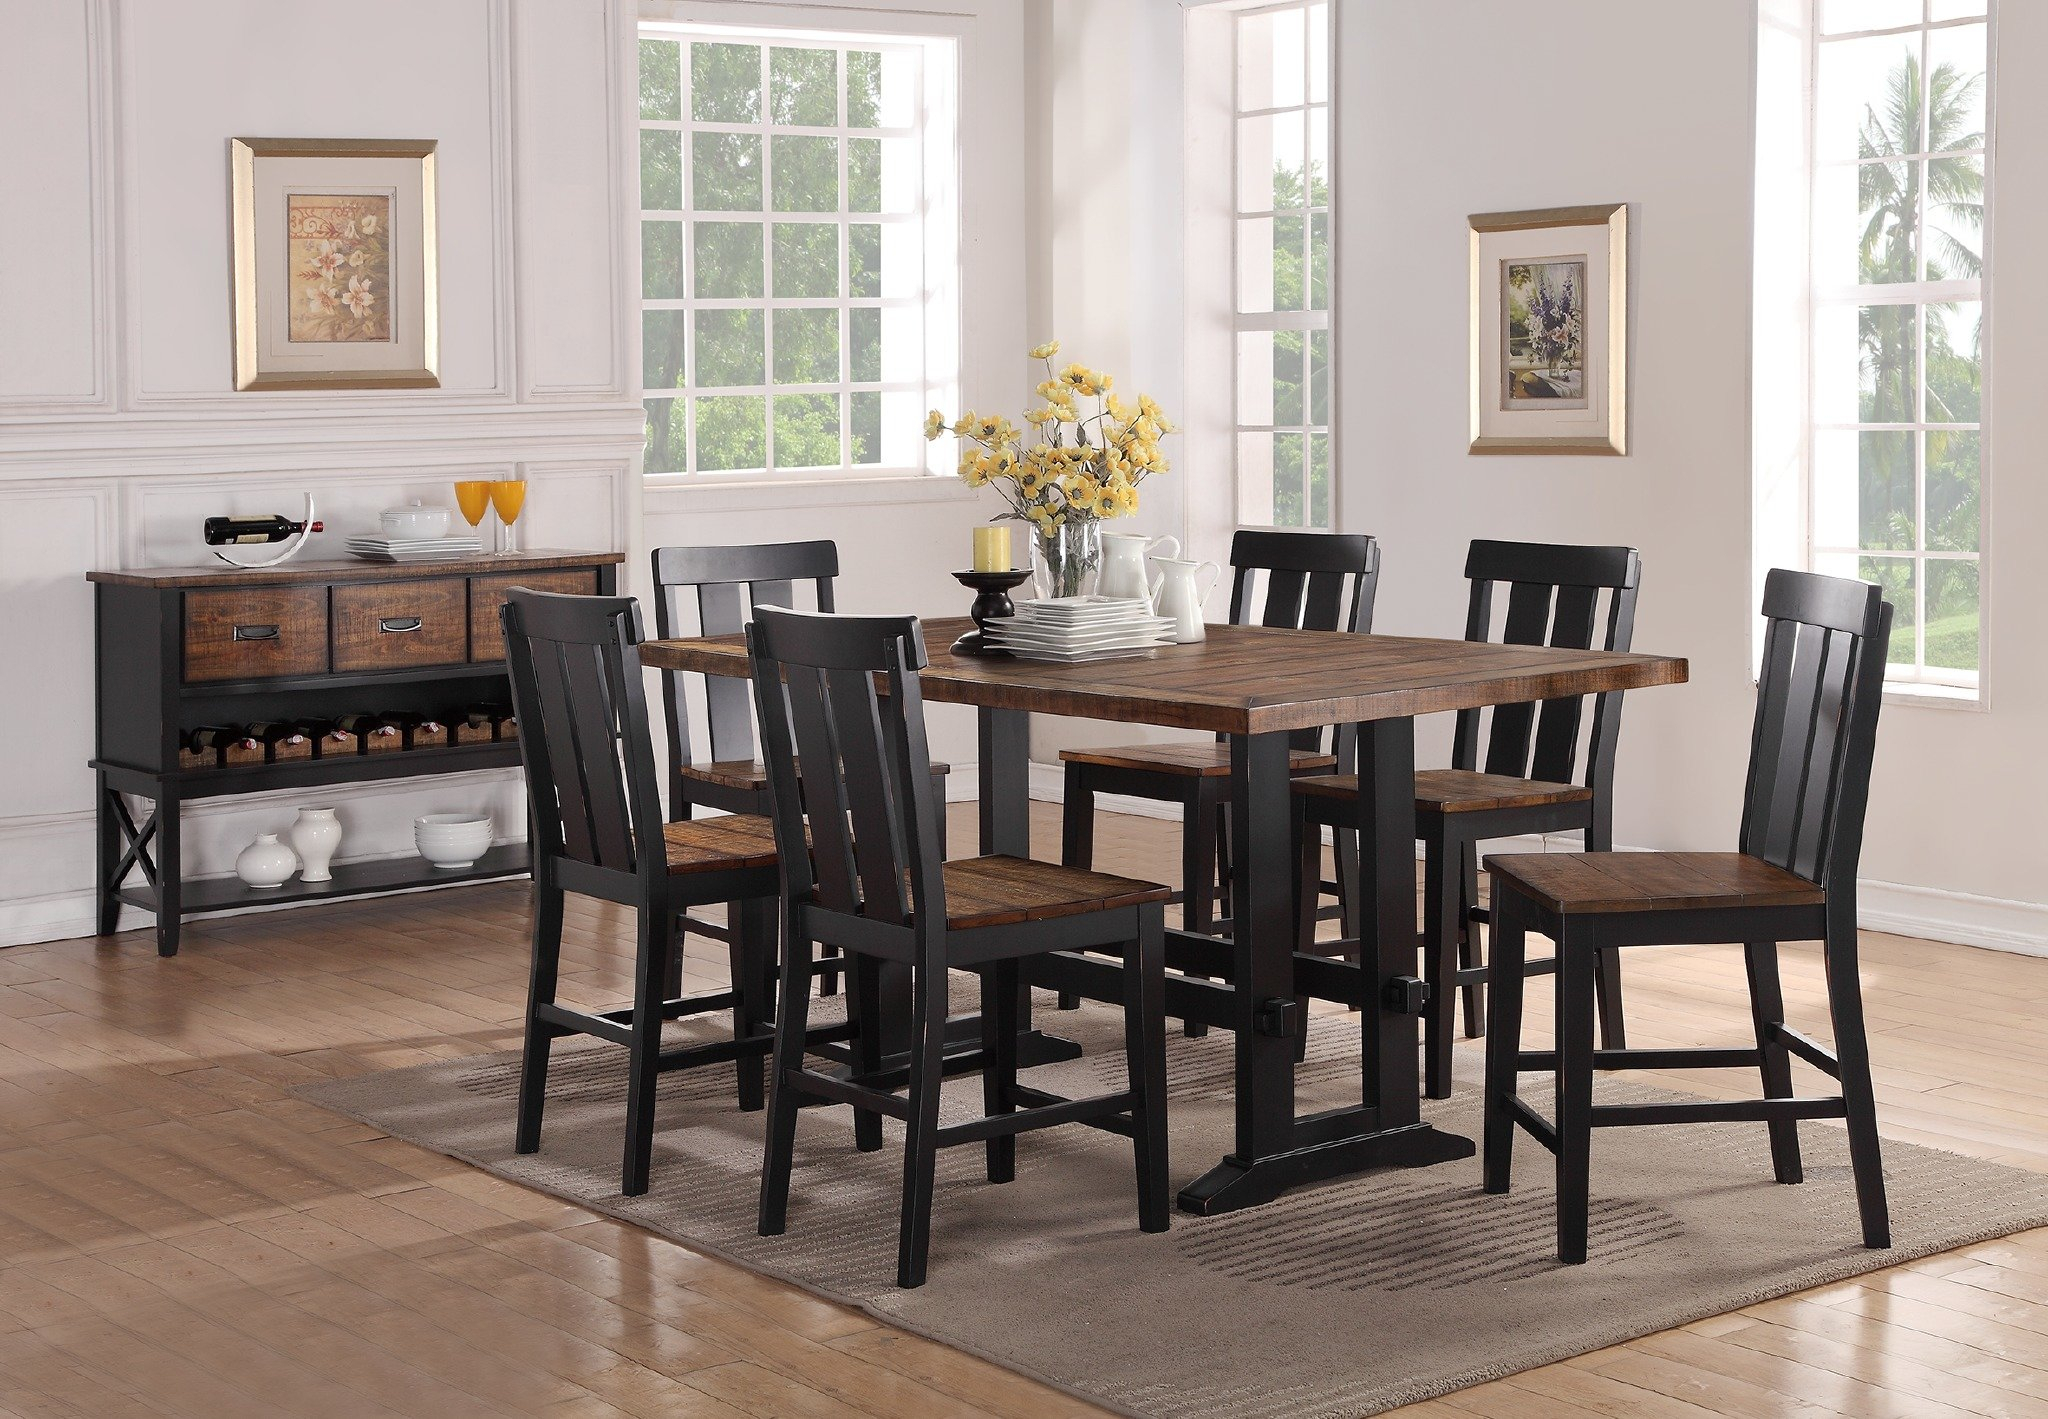 Fashionable Gracie Oaks Goodman 7 Piece Counter Height Dining Set & Reviews Intended For Goodman 5 Piece Solid Wood Dining Sets (Set Of 5) (View 5 of 20)